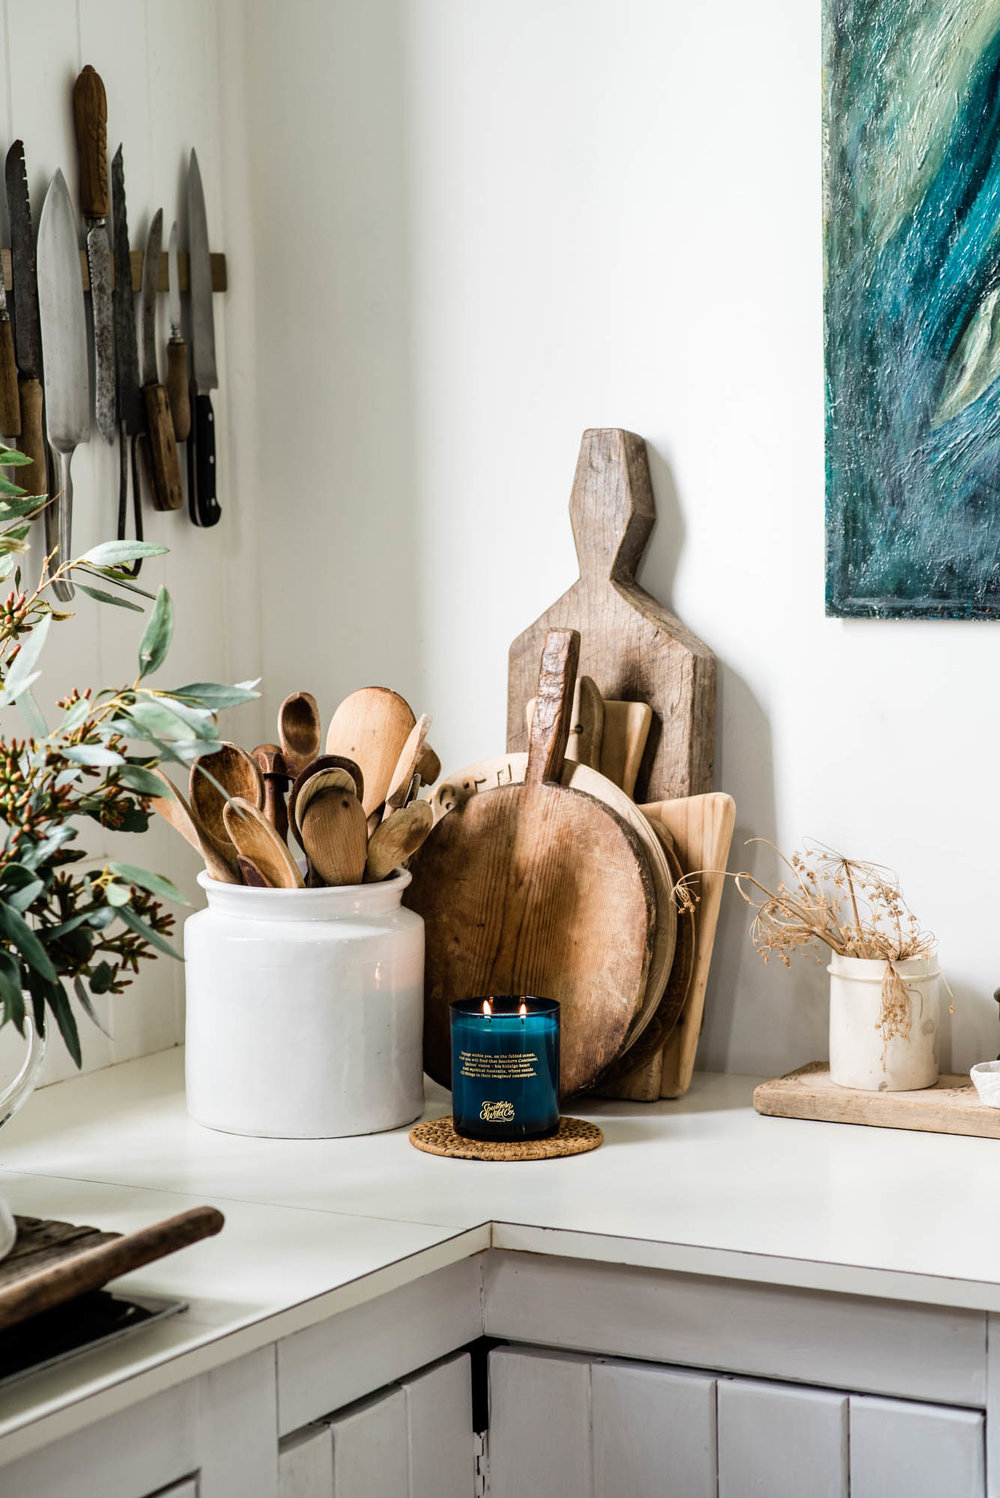 Web-hannah puechmarin-southern wild co-albert and grace styling- product photography-5392.jpg